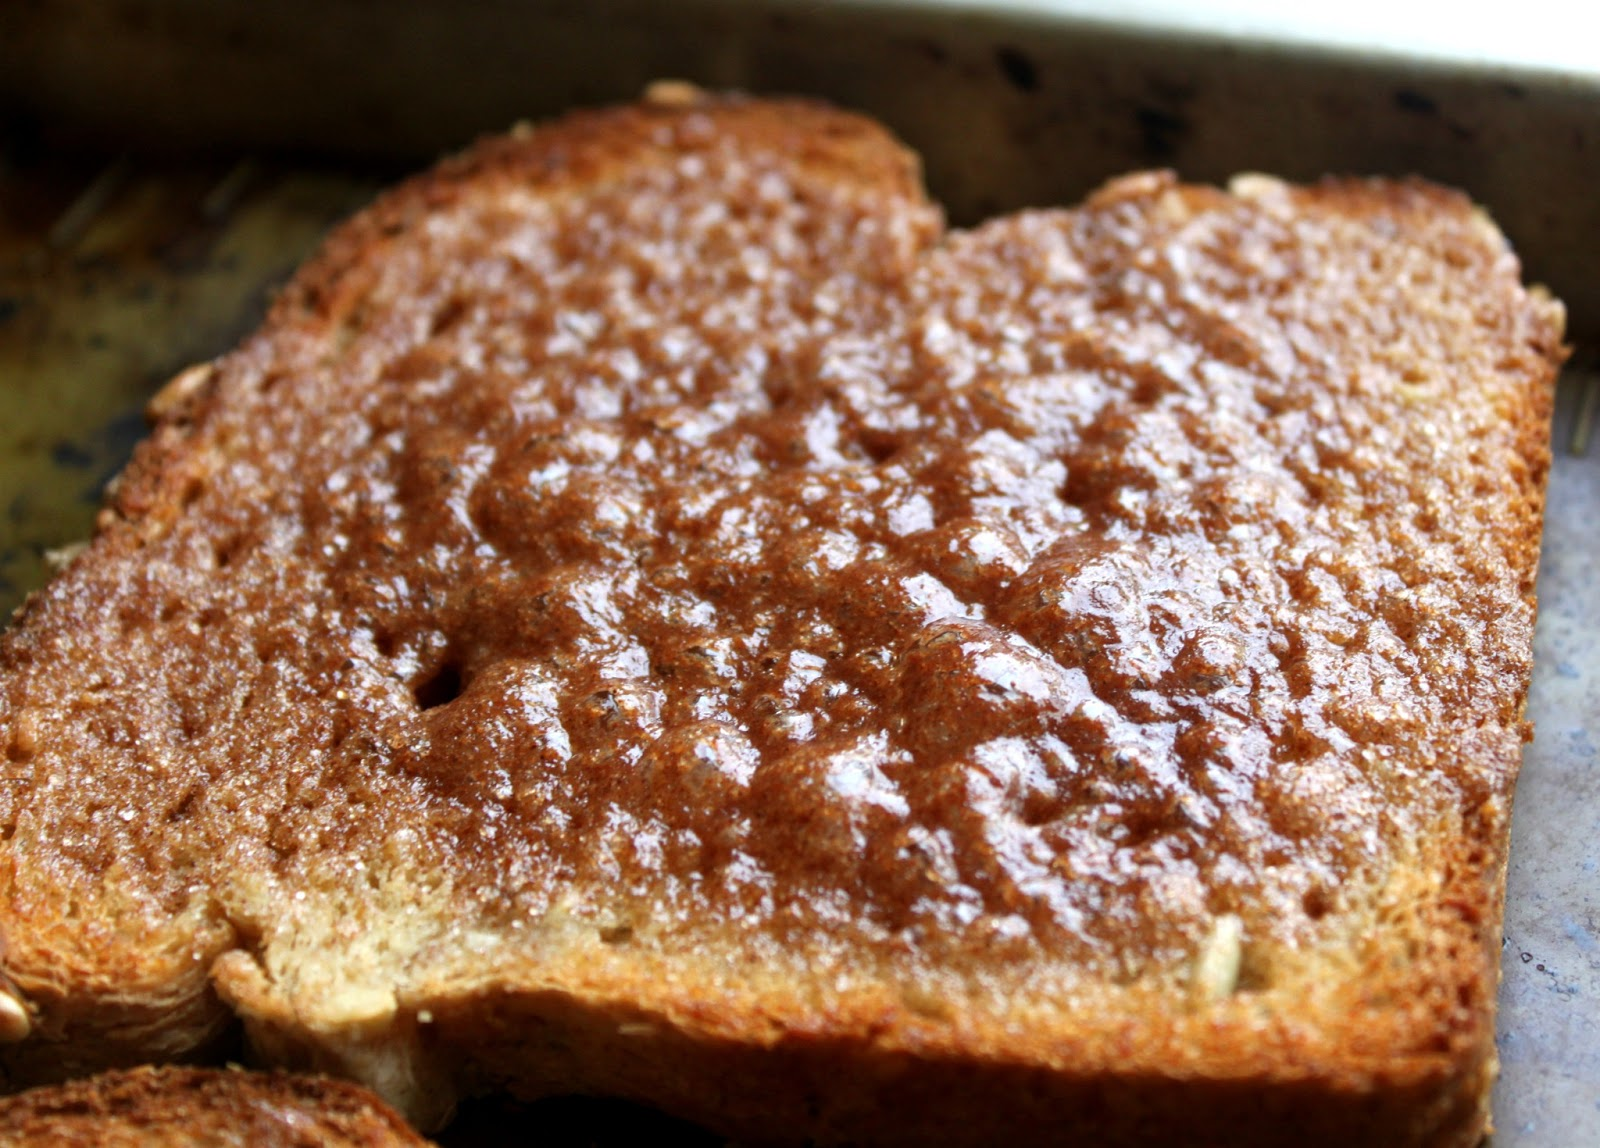 Cinnamon Toast the Pioneer Woman Way